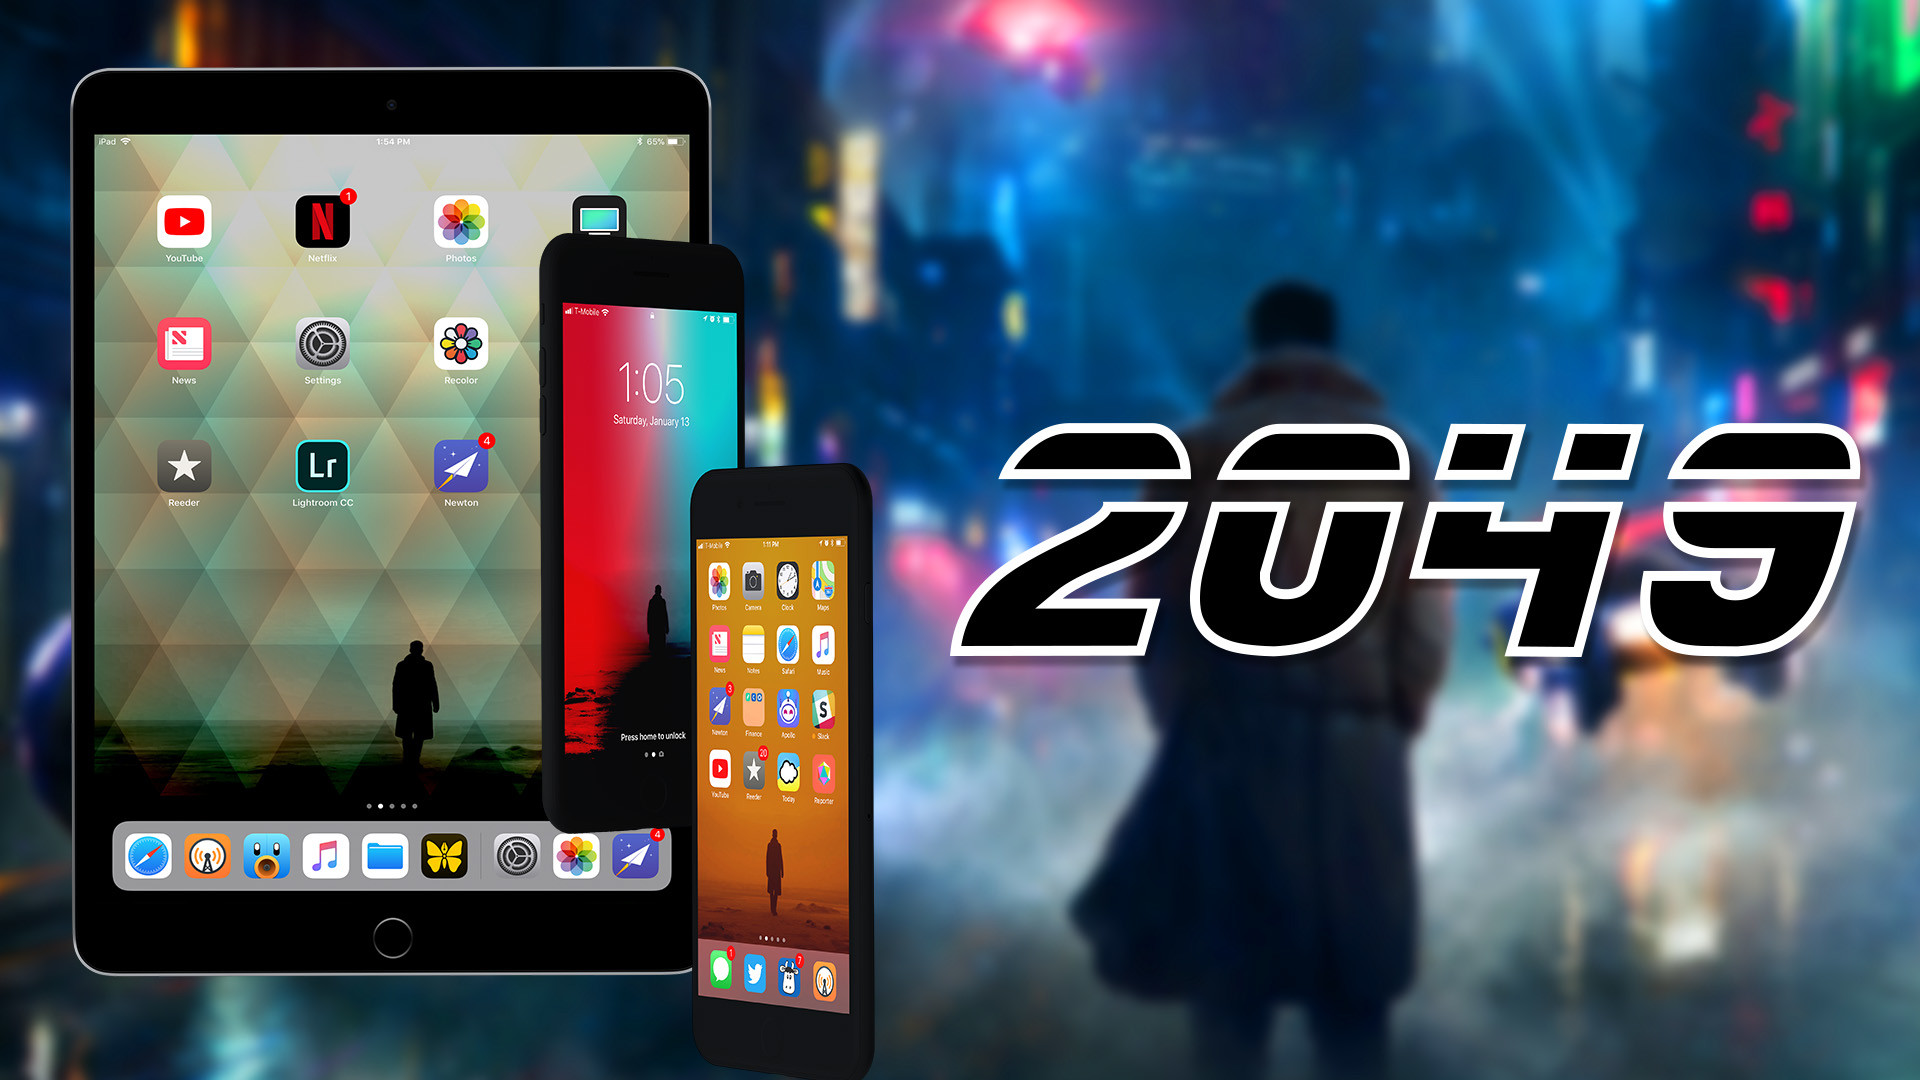 Res: 1920x1080, If you have not seen Blade Runner 2049, I highly suggest you stop right  here and watch it today. But whether you have or have not seen the film, ...